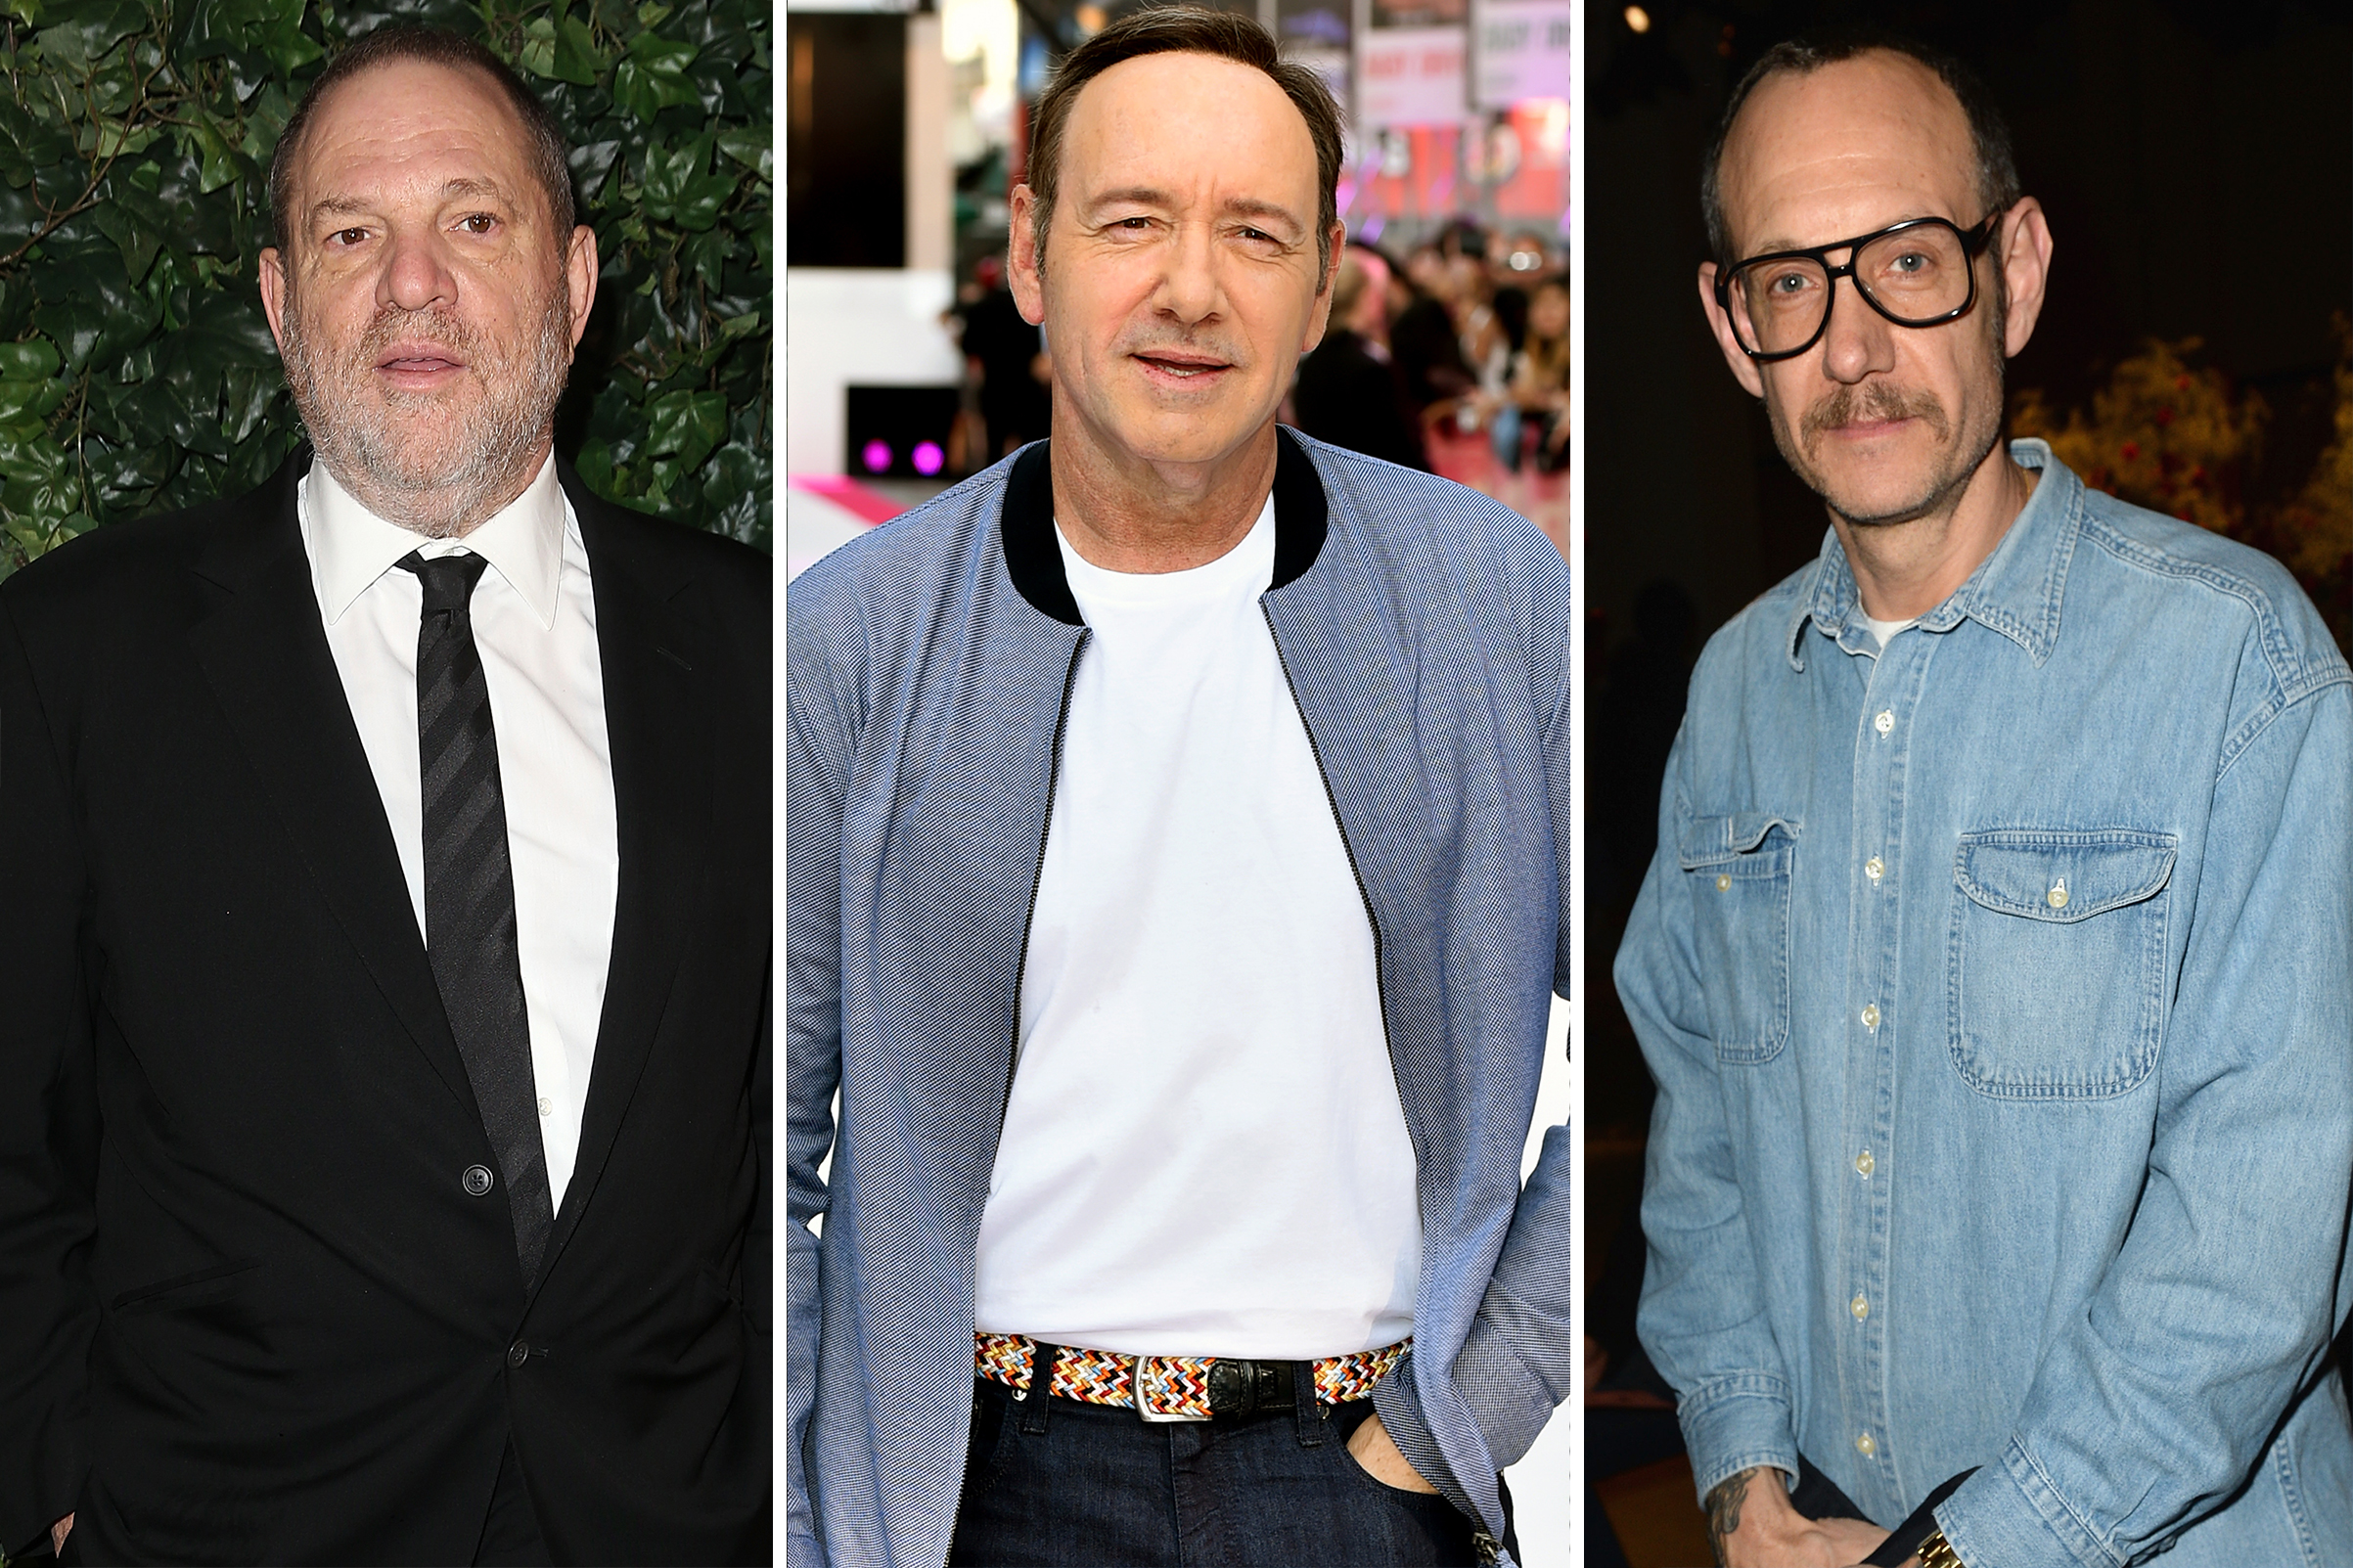 From left: Harvey Weinstein, Kevin Spacey and Terry Richardson